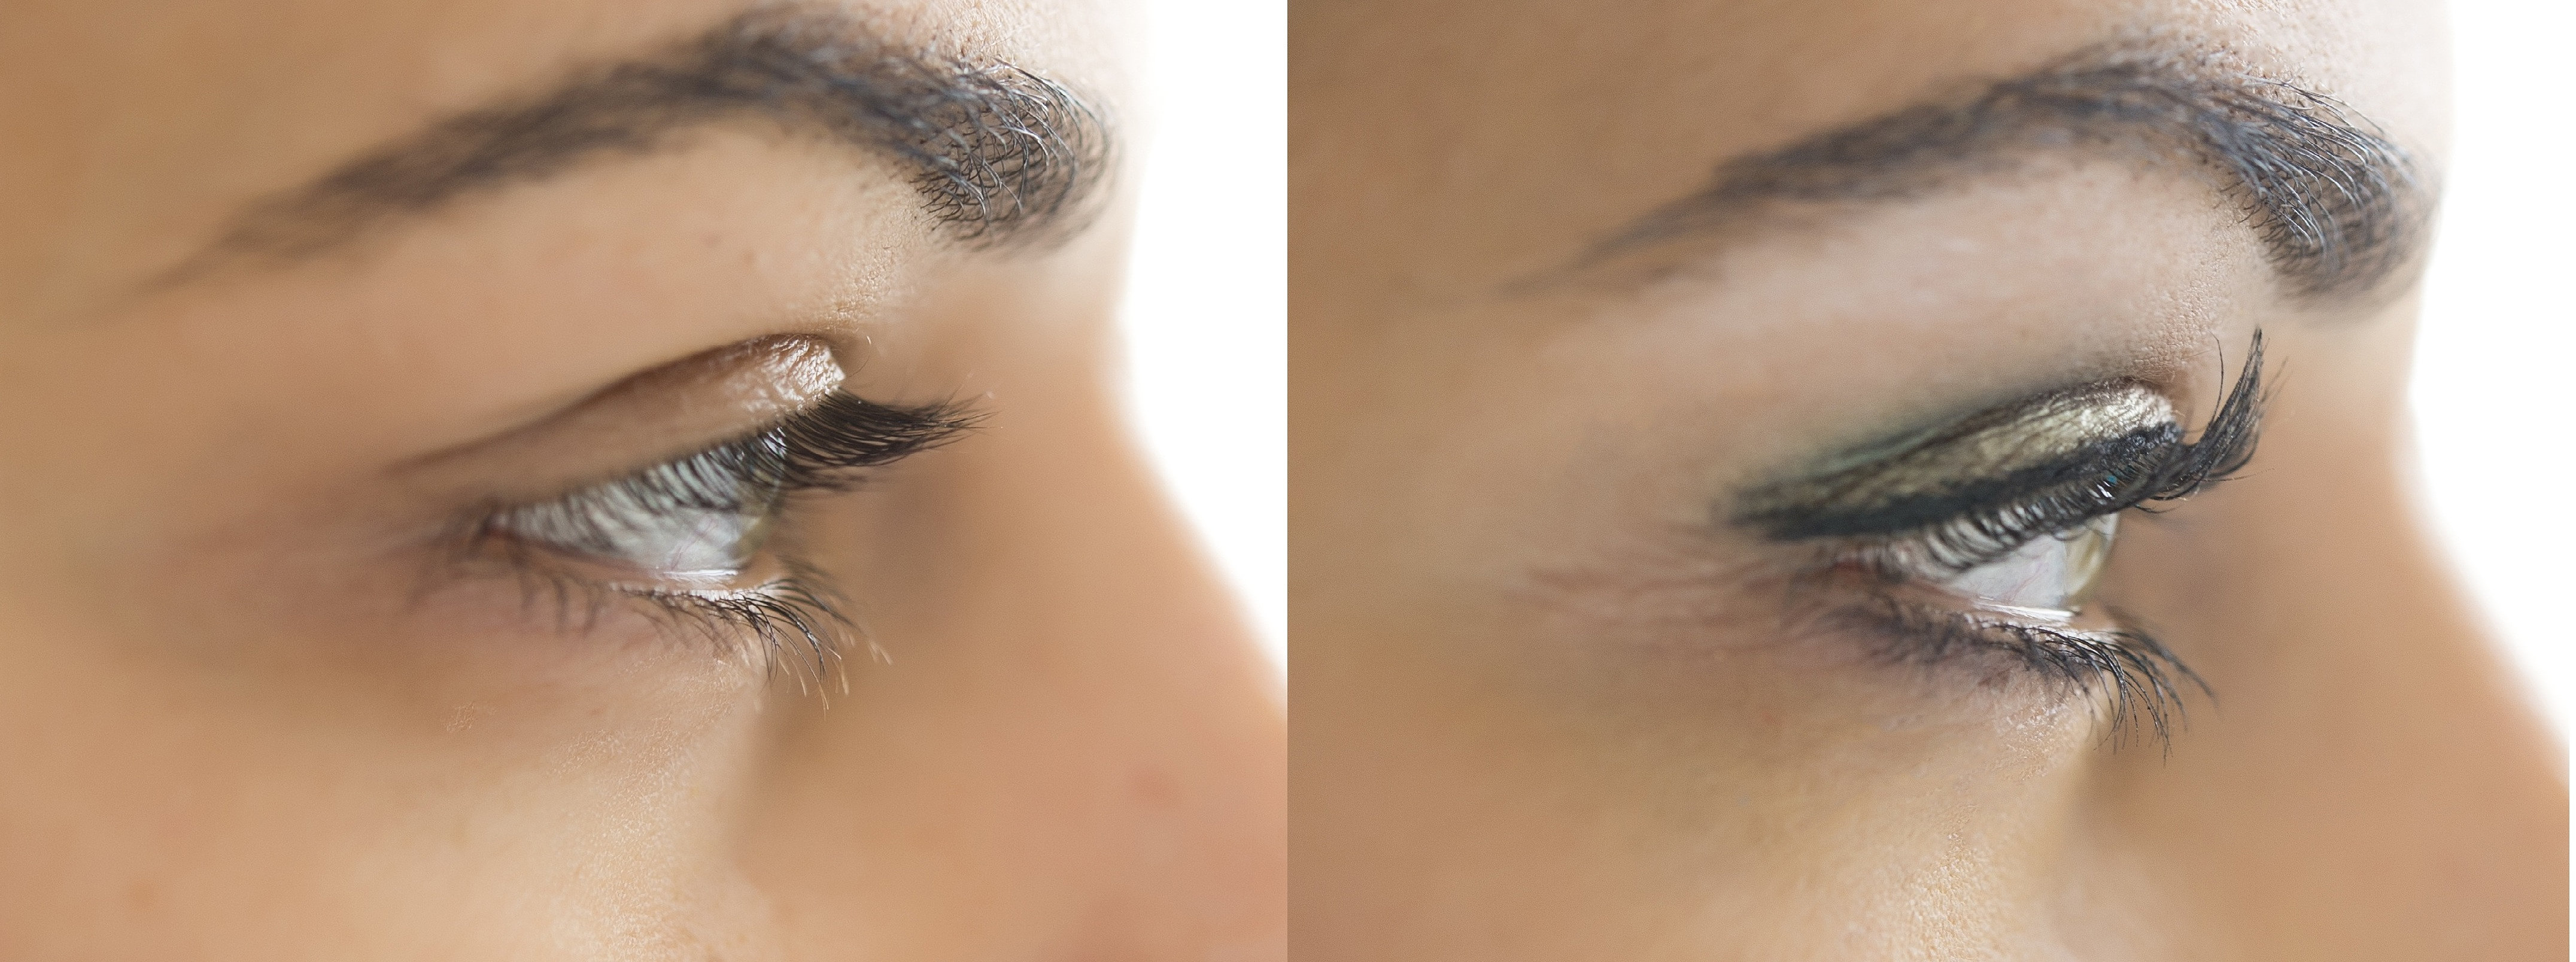 Straight perm solution - Straight Perm Solution Get The Lovely Lashes You Have Always Wanted Hercanberra Com Au